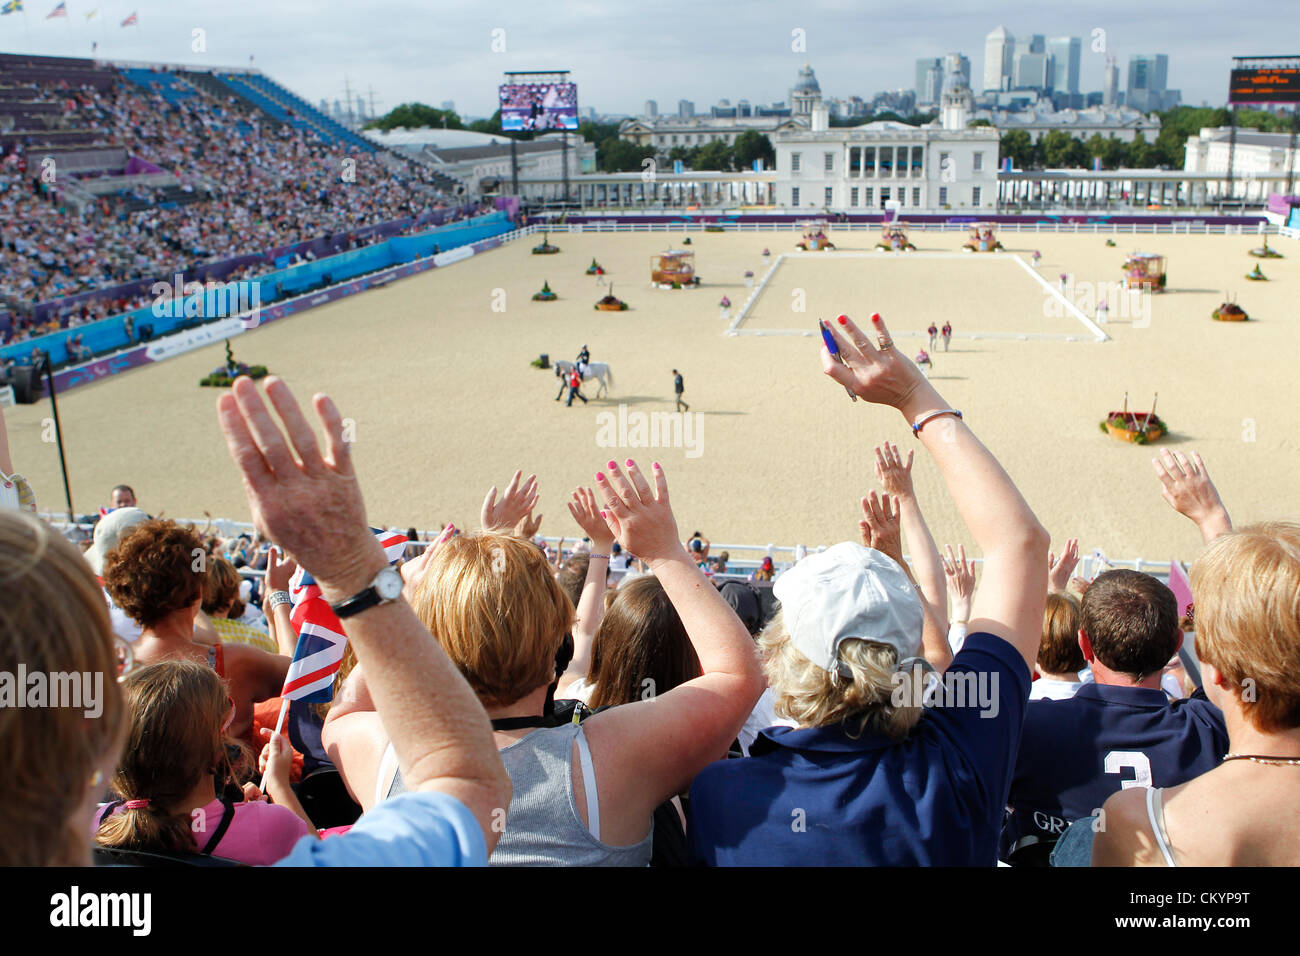 Fans at Greenwich Park equestrian venue cheer silently for horses, riders in Individual dressage 1A at the London Stock Photo